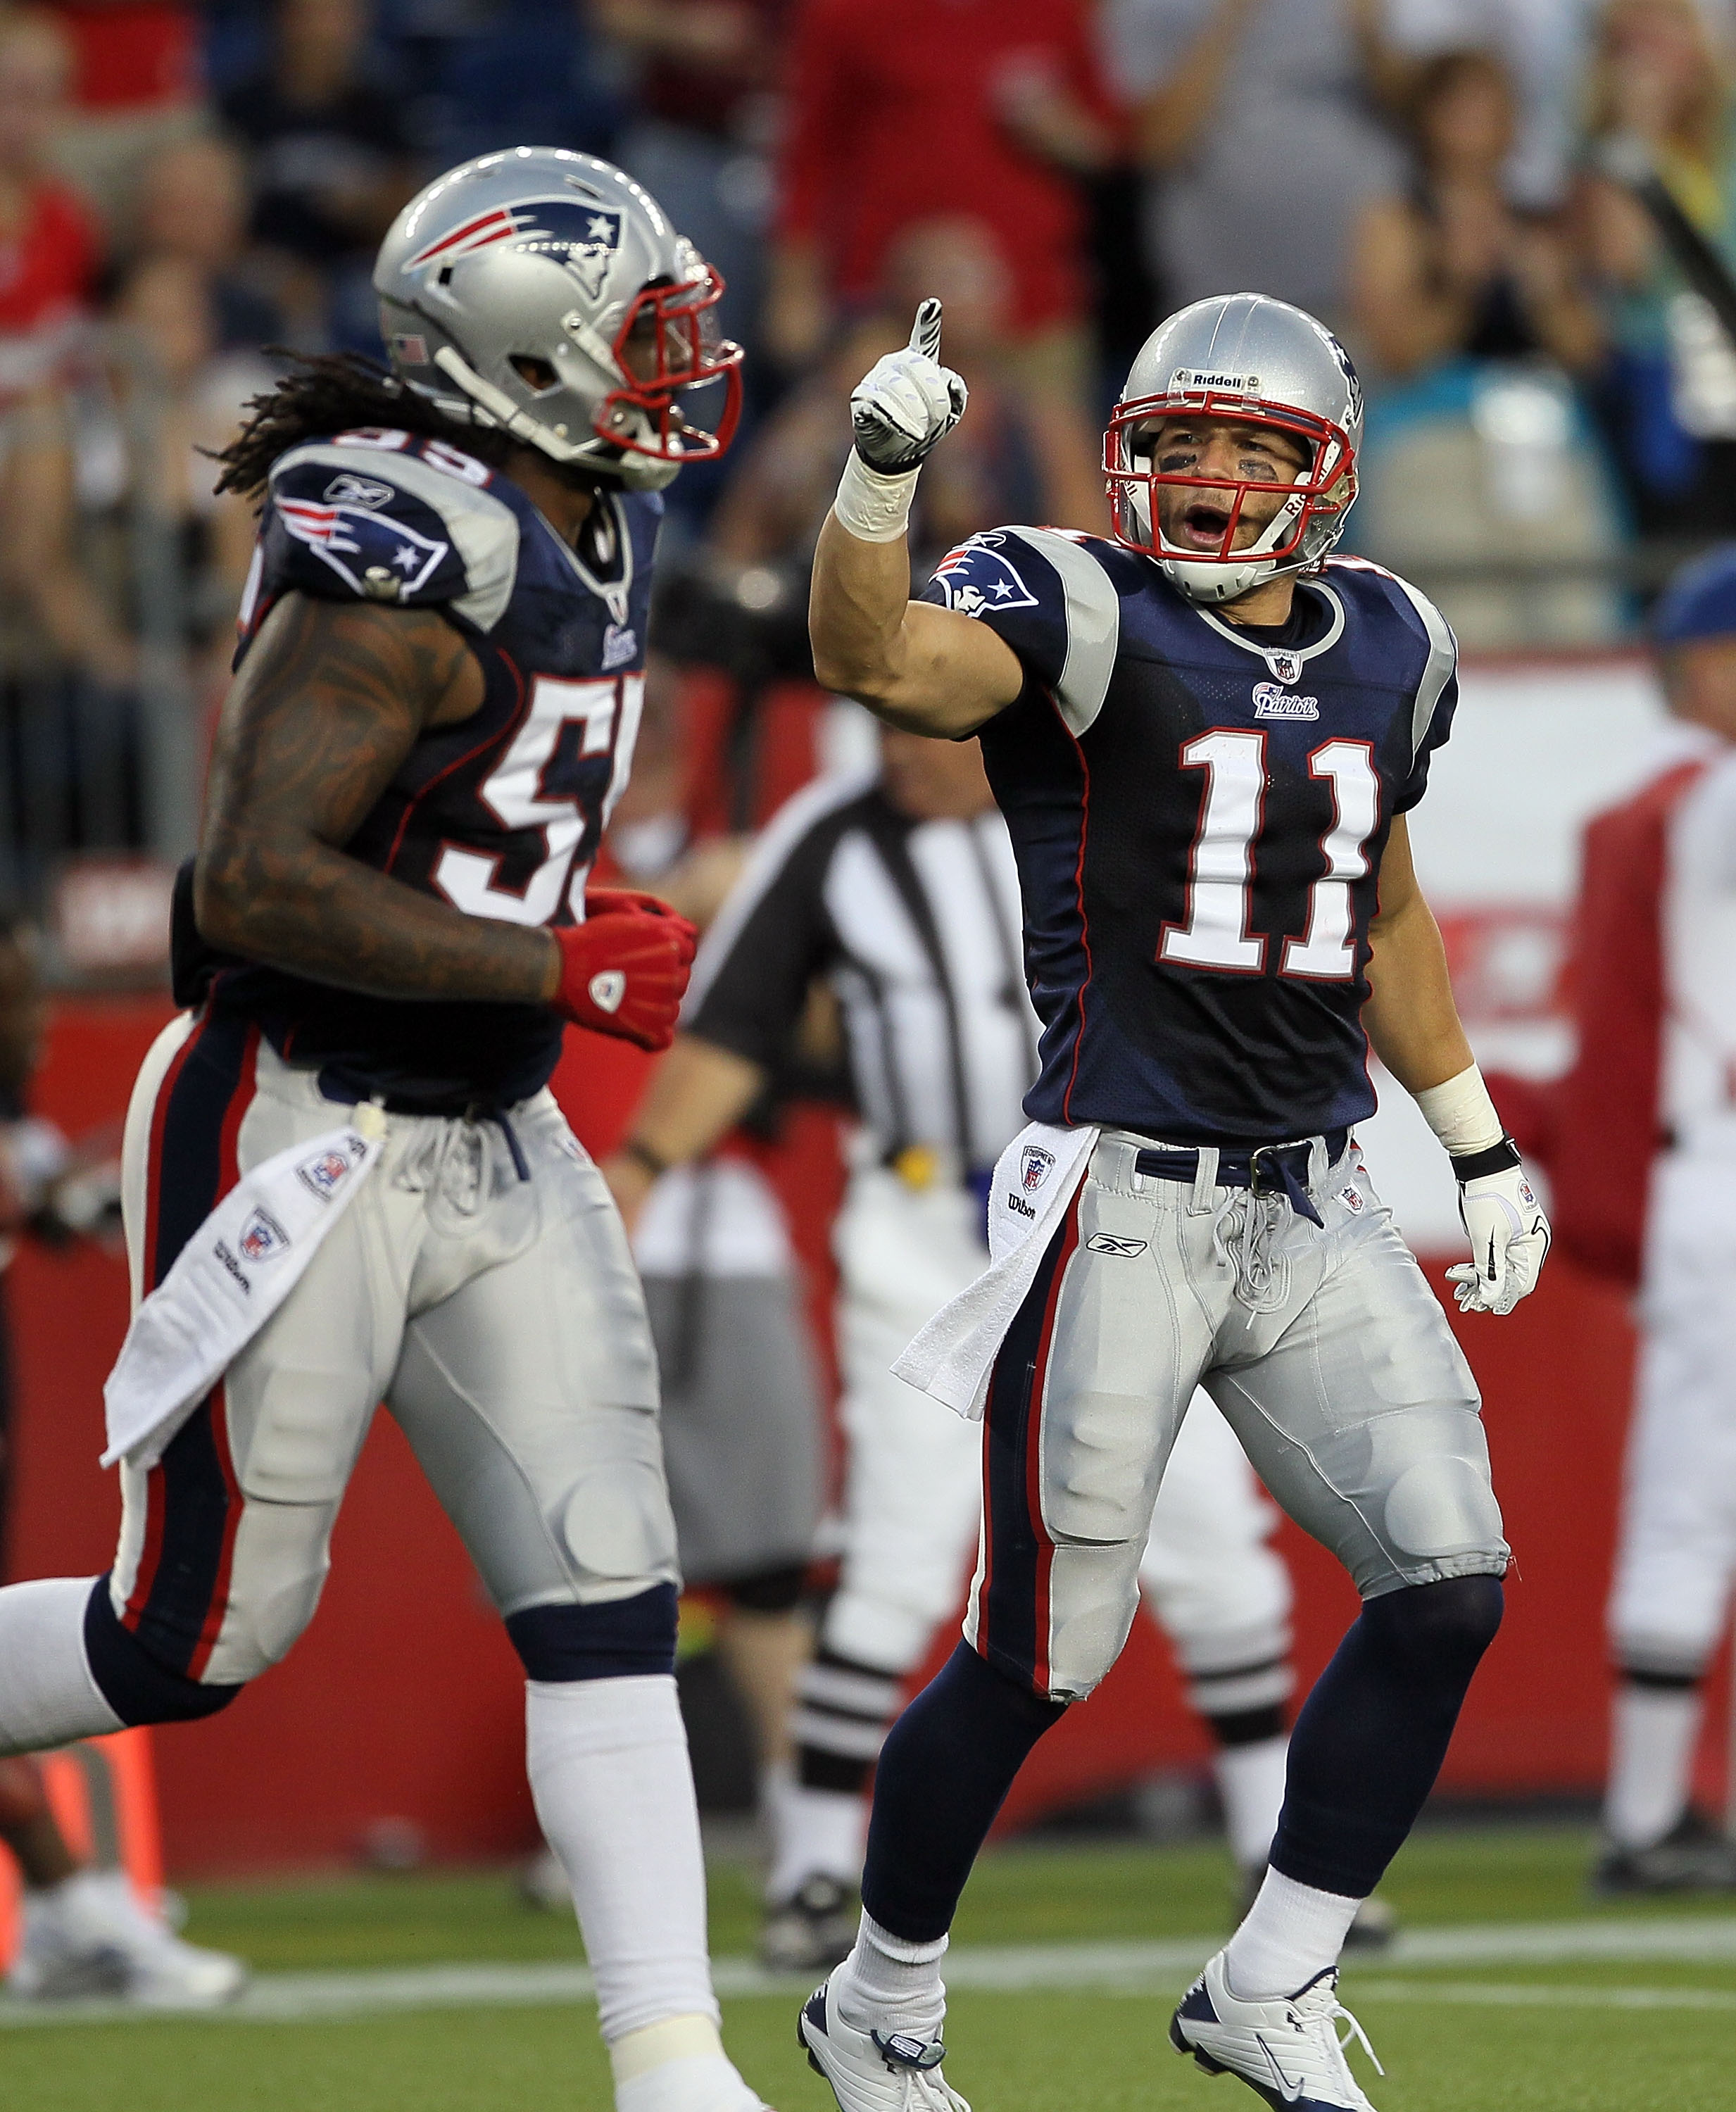 FOXBORO, MA - AUGUST 12: Brandon Spikes #55 and Julian Edelman #11 of the New England Patriots react in the first quarter during the preseason game against the New Orleans Saints at Gillette Stadium on August 12, 2010 in Foxboro, Massachusetts. (Photo by